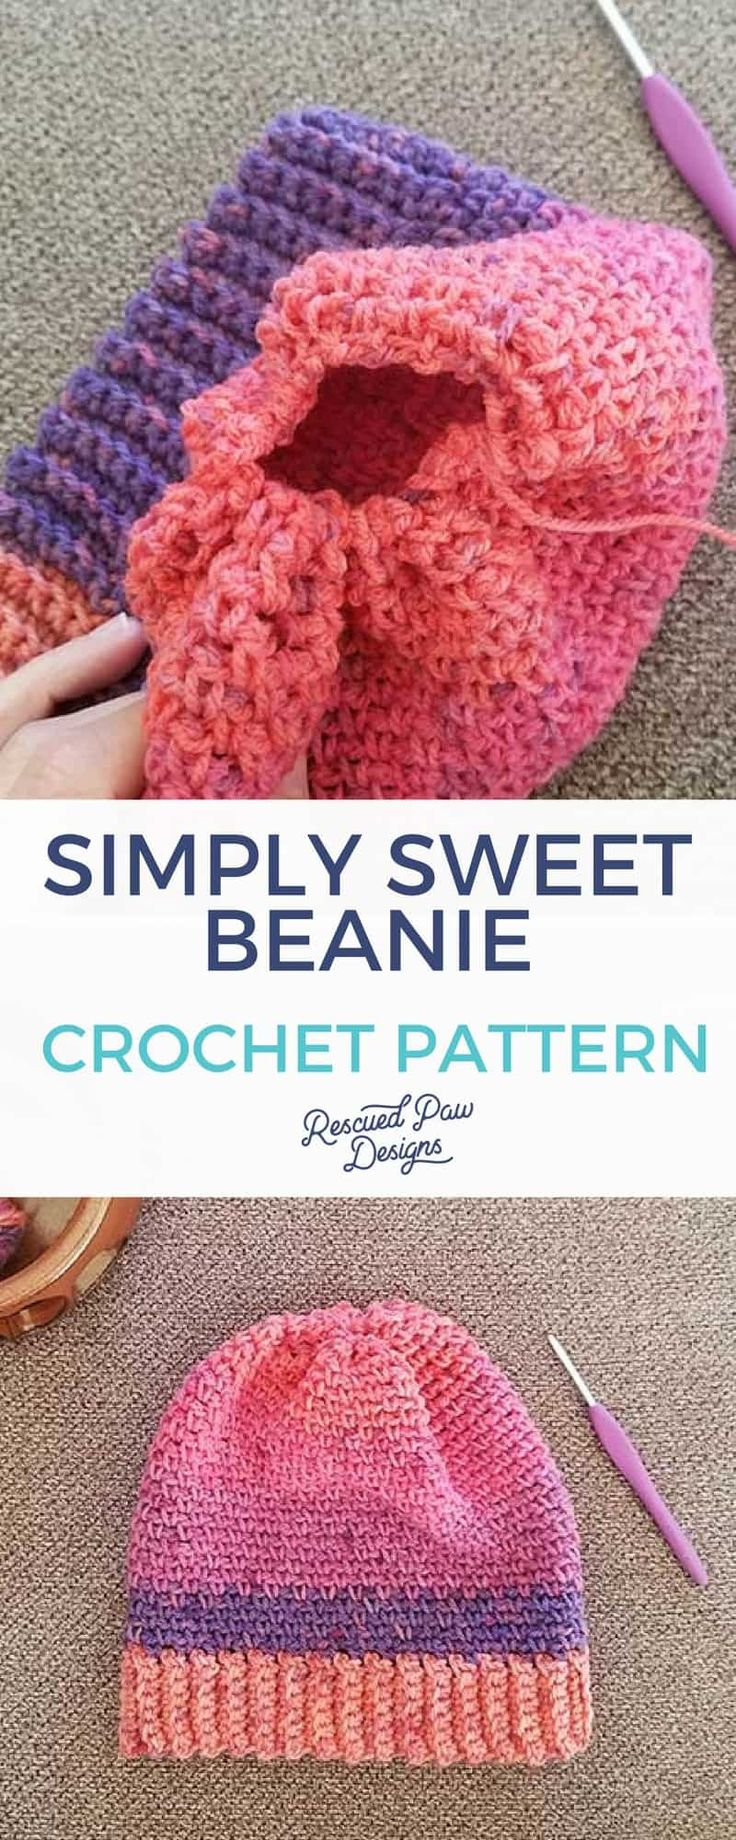 15095 best crafts crochet and knit images on pinterest knitwear make this simple beginner friendly crochet beanie today free pattern from rescued paw designs via bankloansurffo Image collections